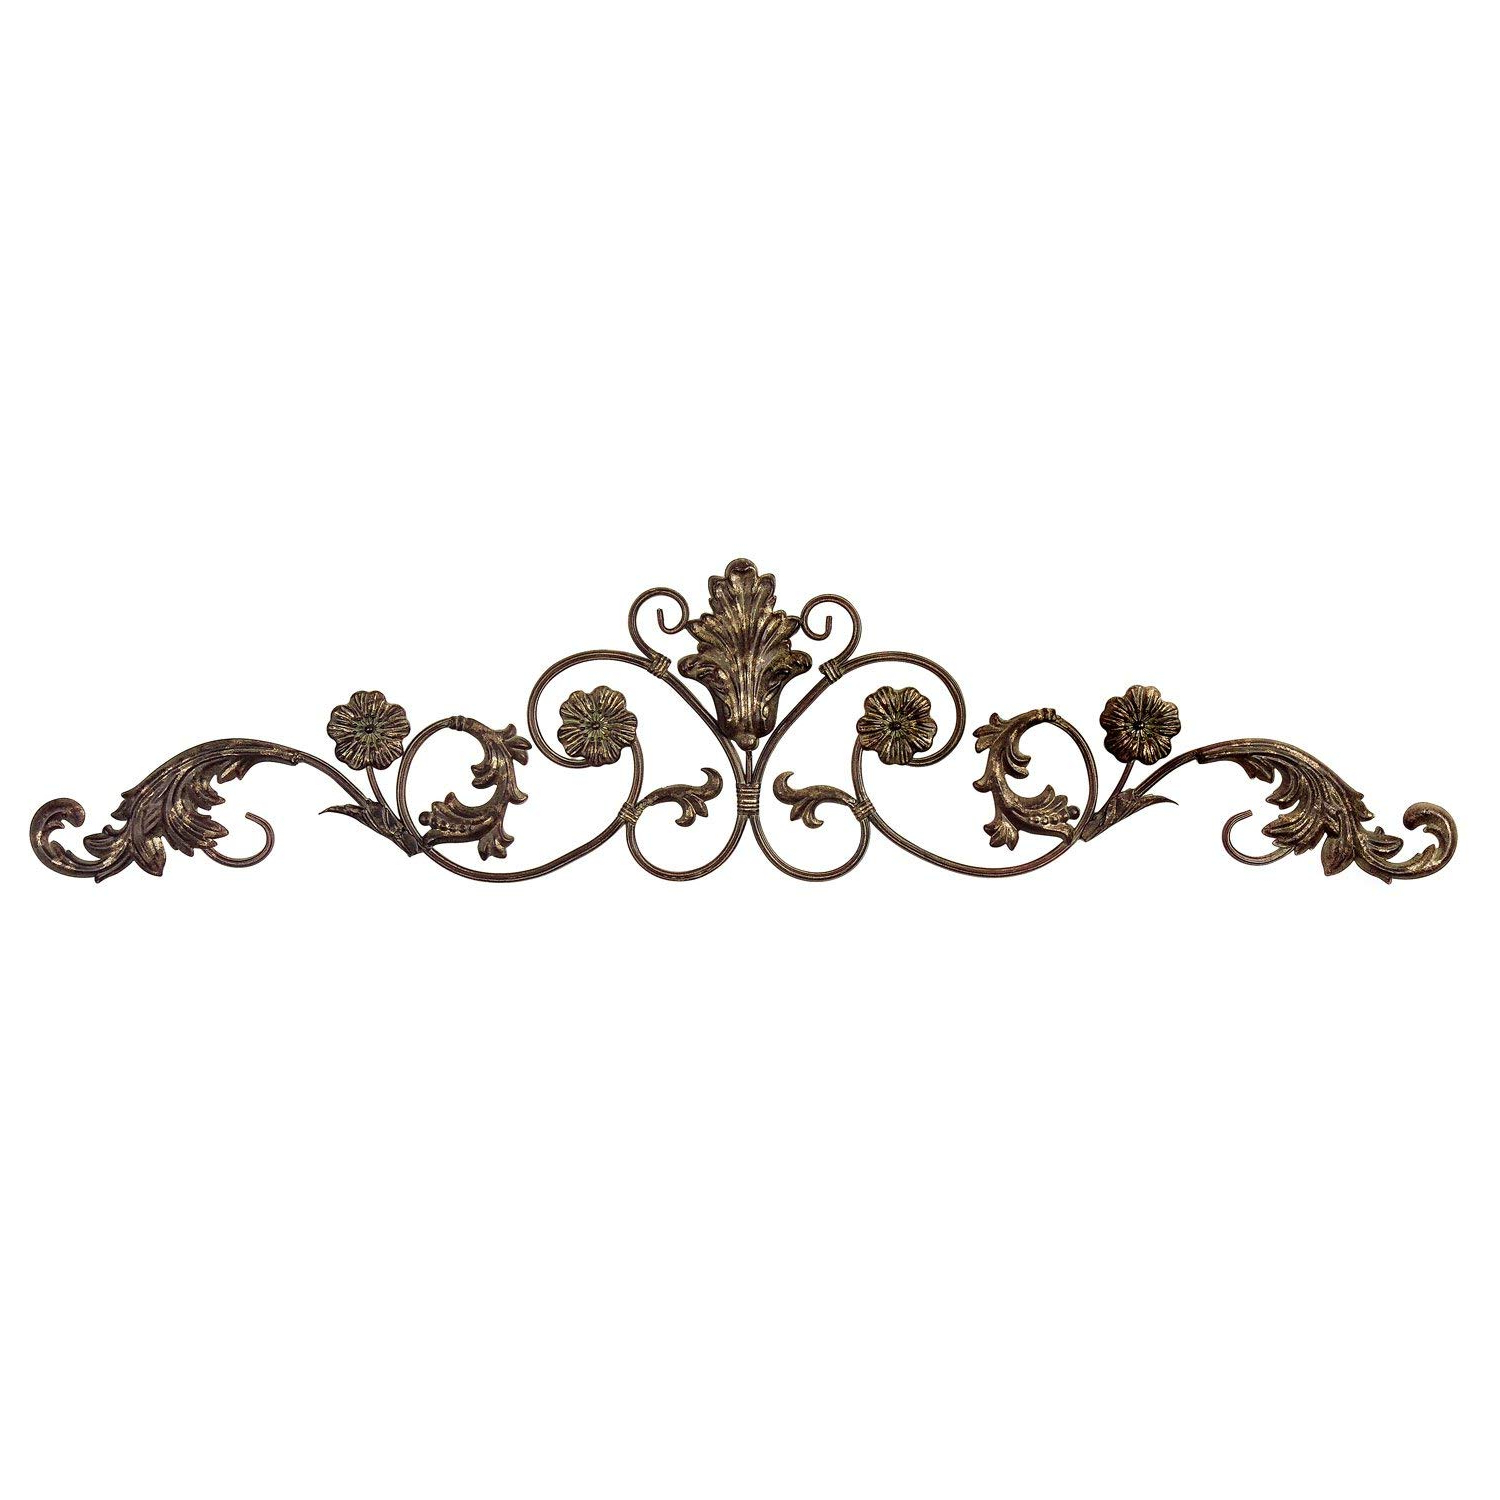 Most Recent Amazon: Imax Allegro Wall Decor Hanging In Gold Metallic Finish Within Belle Circular Scroll Wall Decor (Gallery 14 of 20)